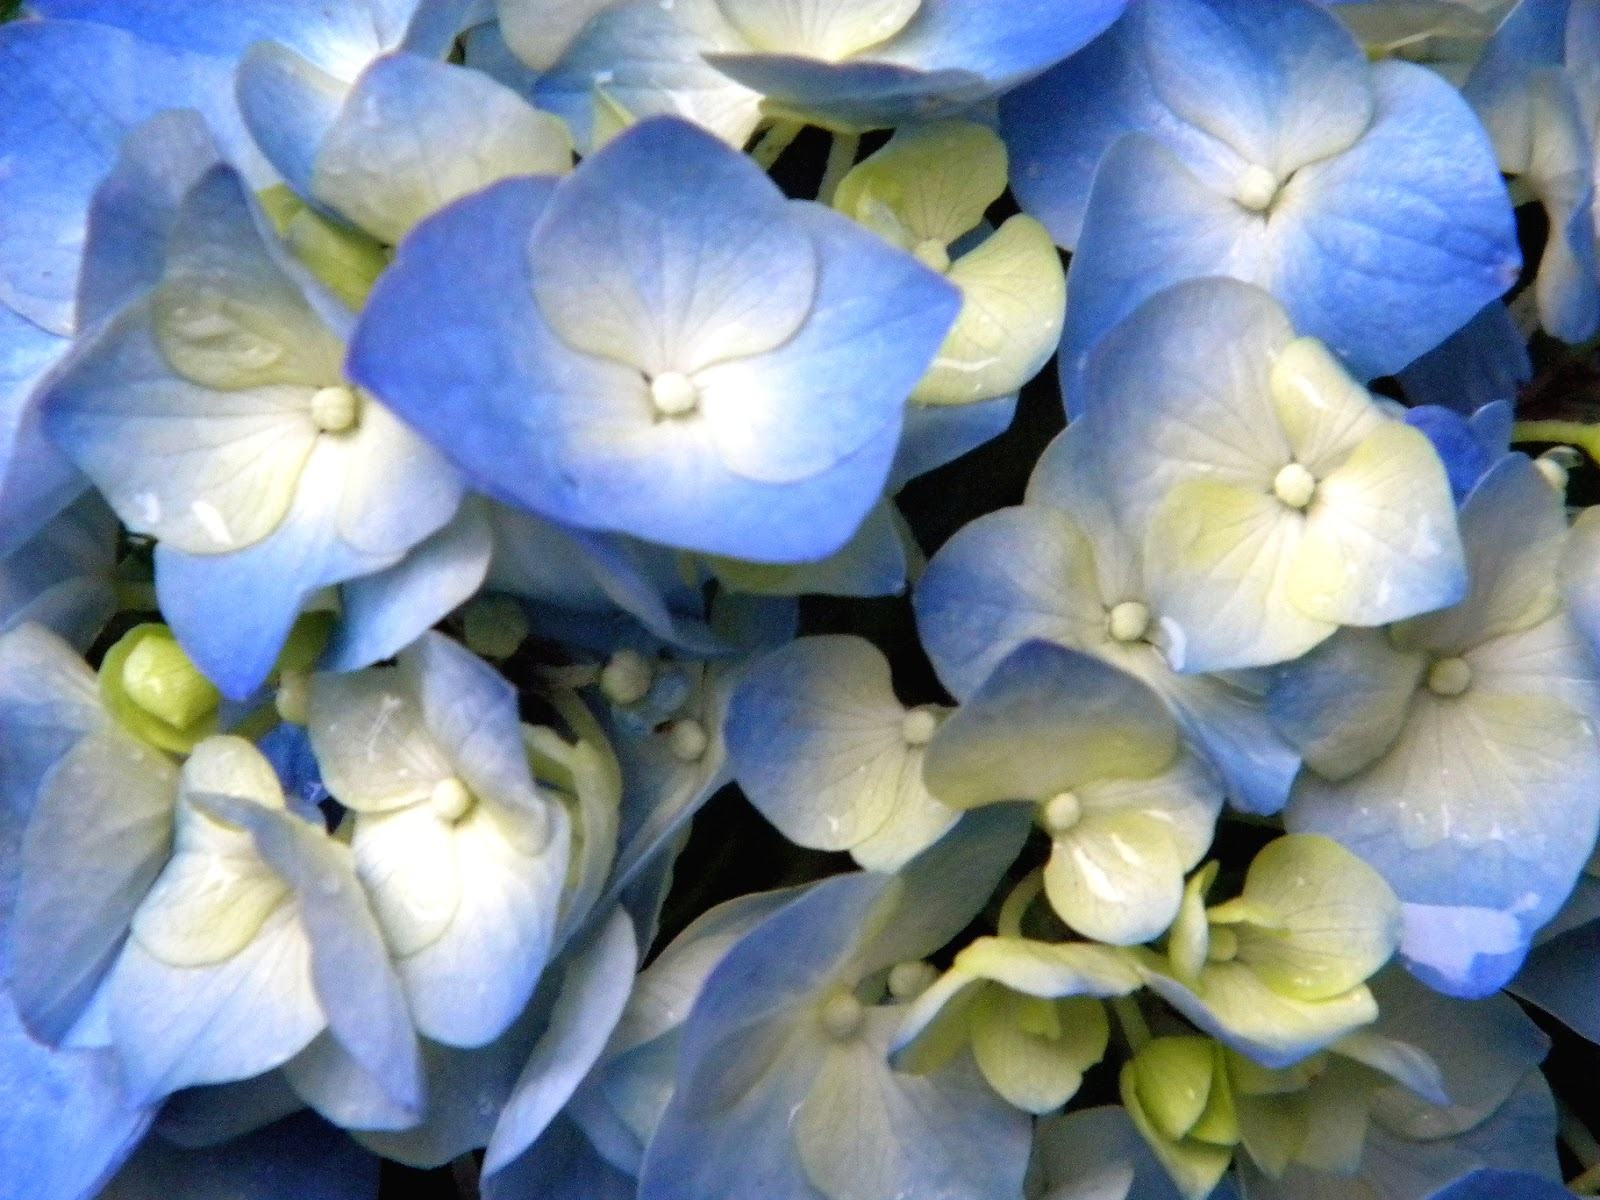 Hydrangea Blue spring flowers in NYC